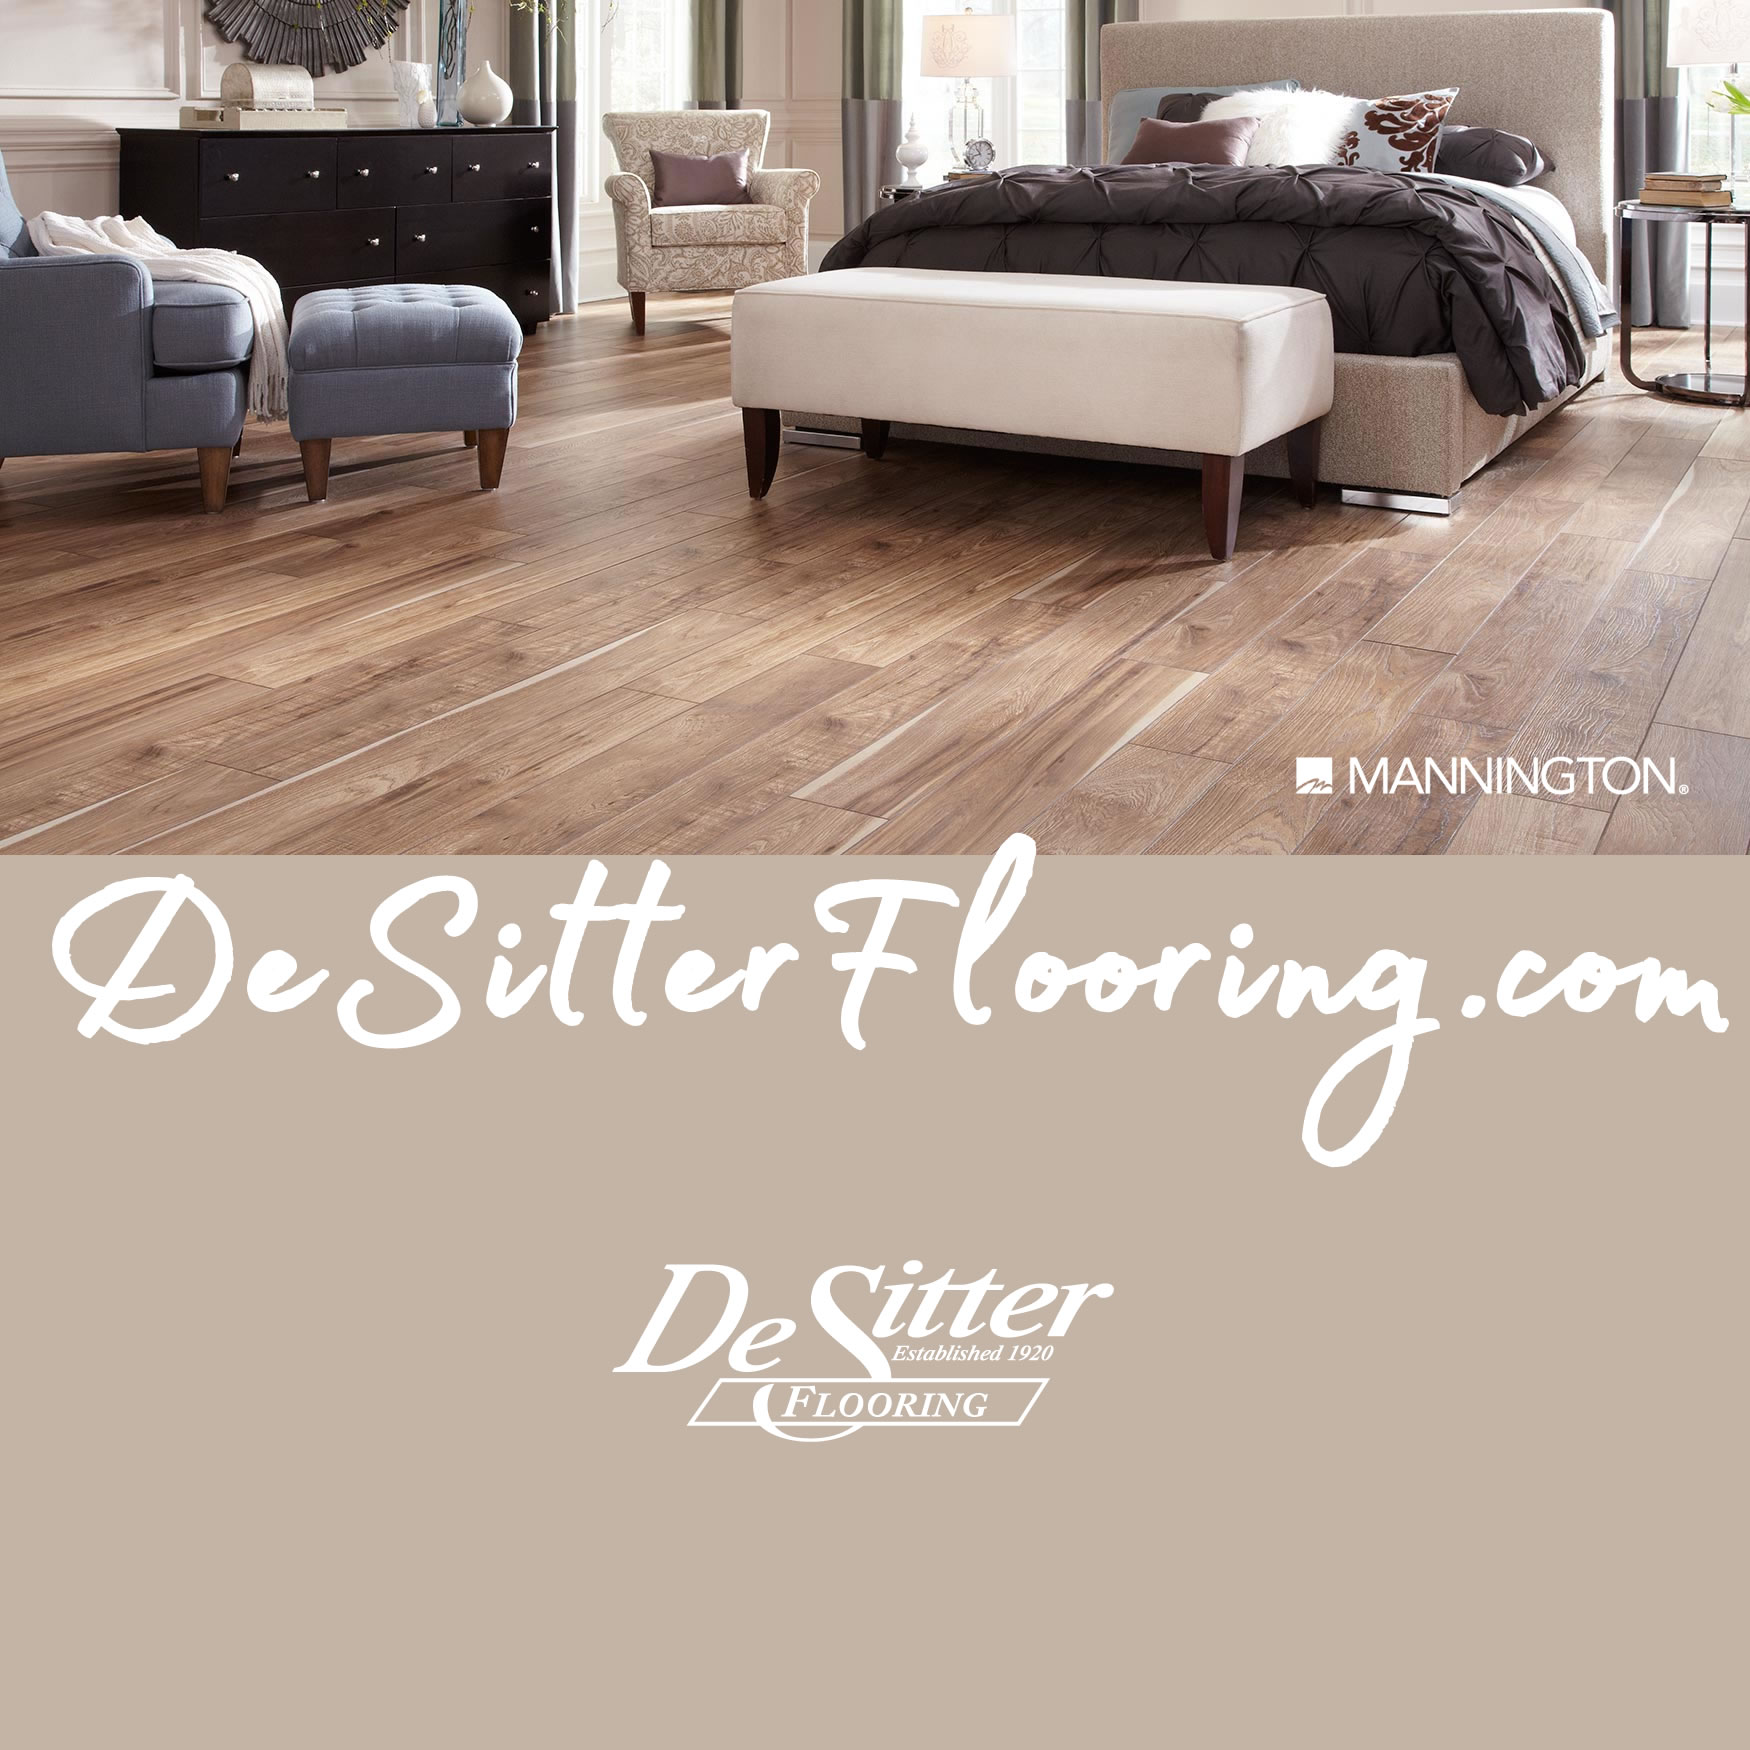 Mannington flooring products from desitter